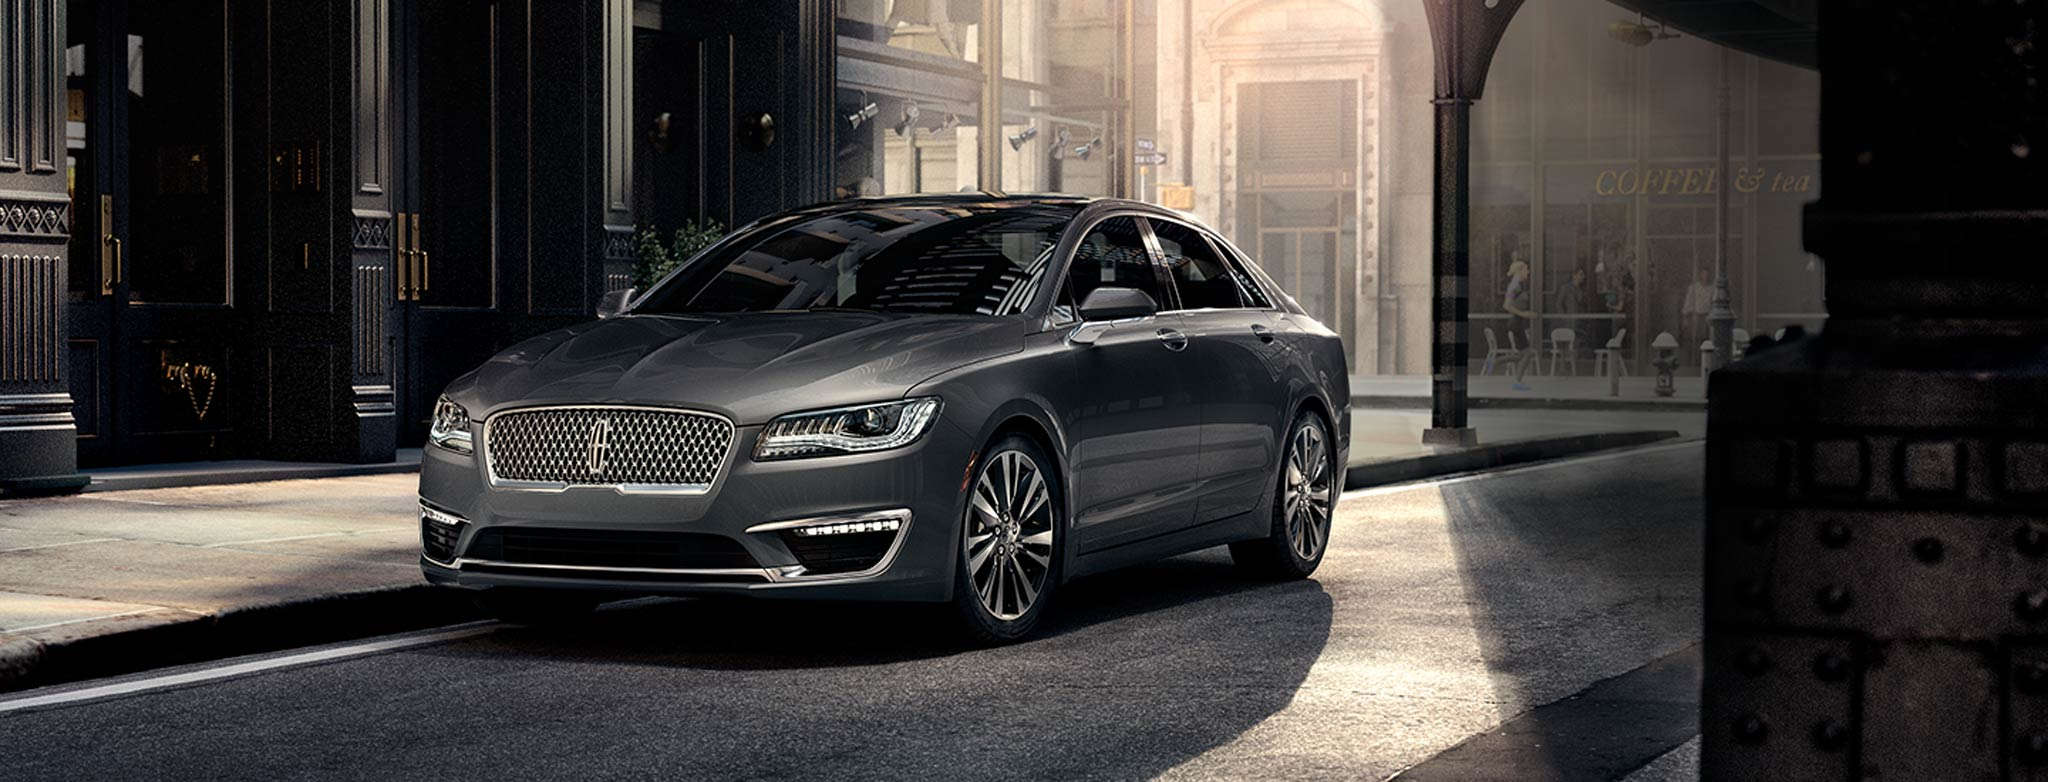 the new 2017 lincoln mkz hev. Black Bedroom Furniture Sets. Home Design Ideas